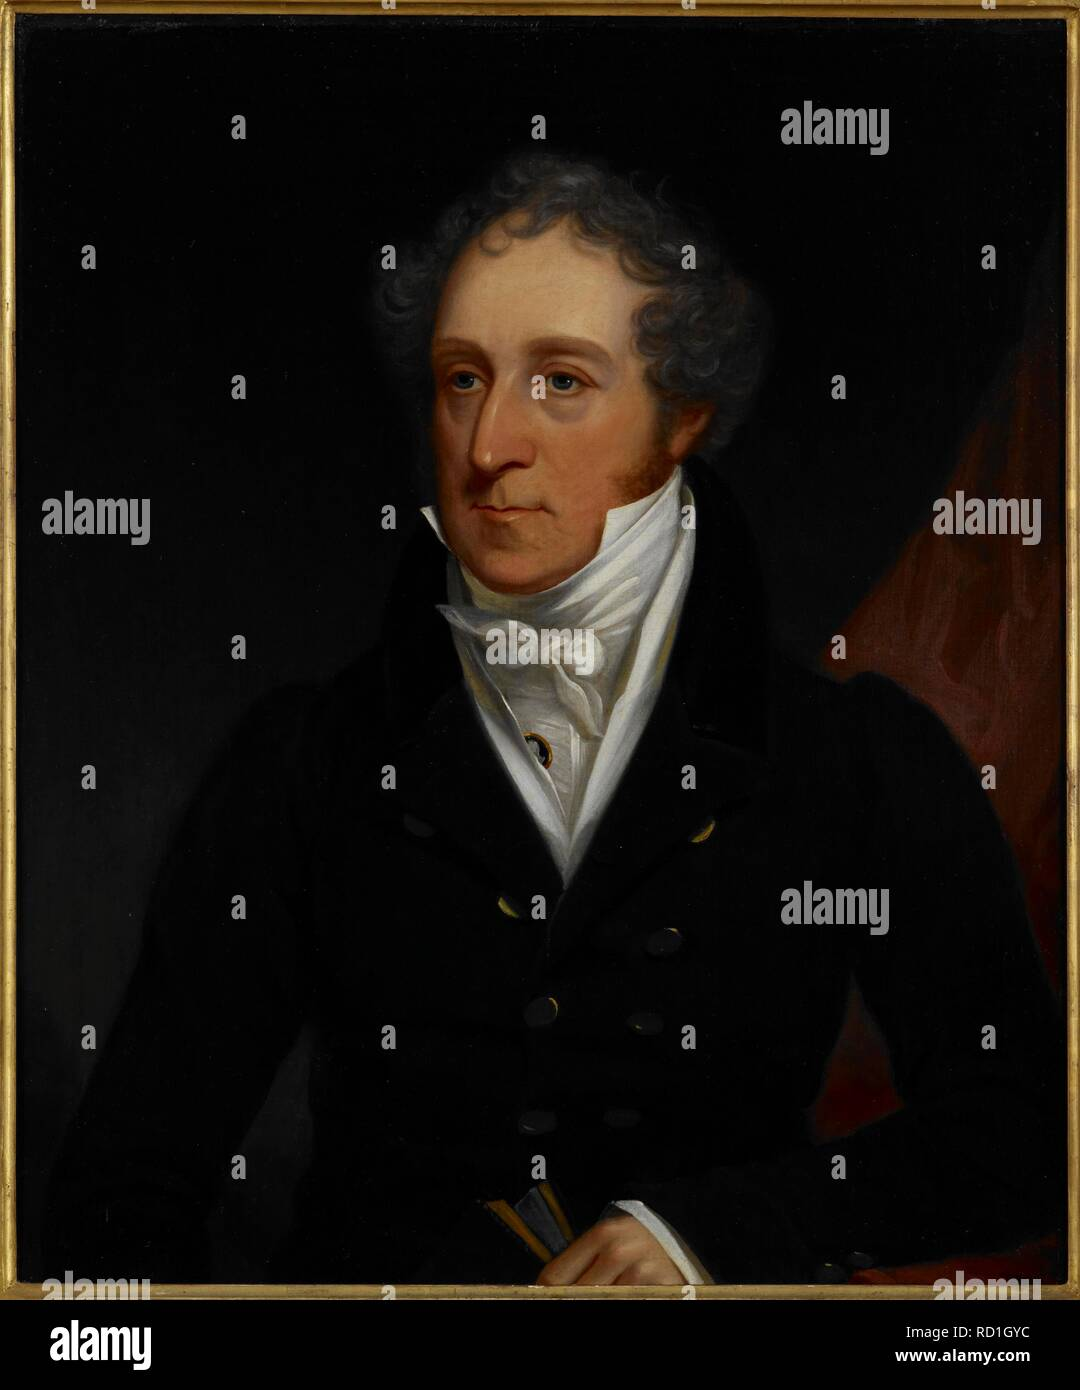 Half length portrait of John Fombelle (1763-1849), c.1820, standing holding a book in his left hand. He was in India as a Writer in 1783, Sub-secretary in the Secret Department 1789-93, and Judge and Magistrate at Bhagalpur 1793-1802. From 1805-17 he was a Puisne Judge of the Sudder Dewanny and Nizamut Adaulat in Calcutta. c. 1820. Source: Foster 848. Author: ANON. - Stock Image